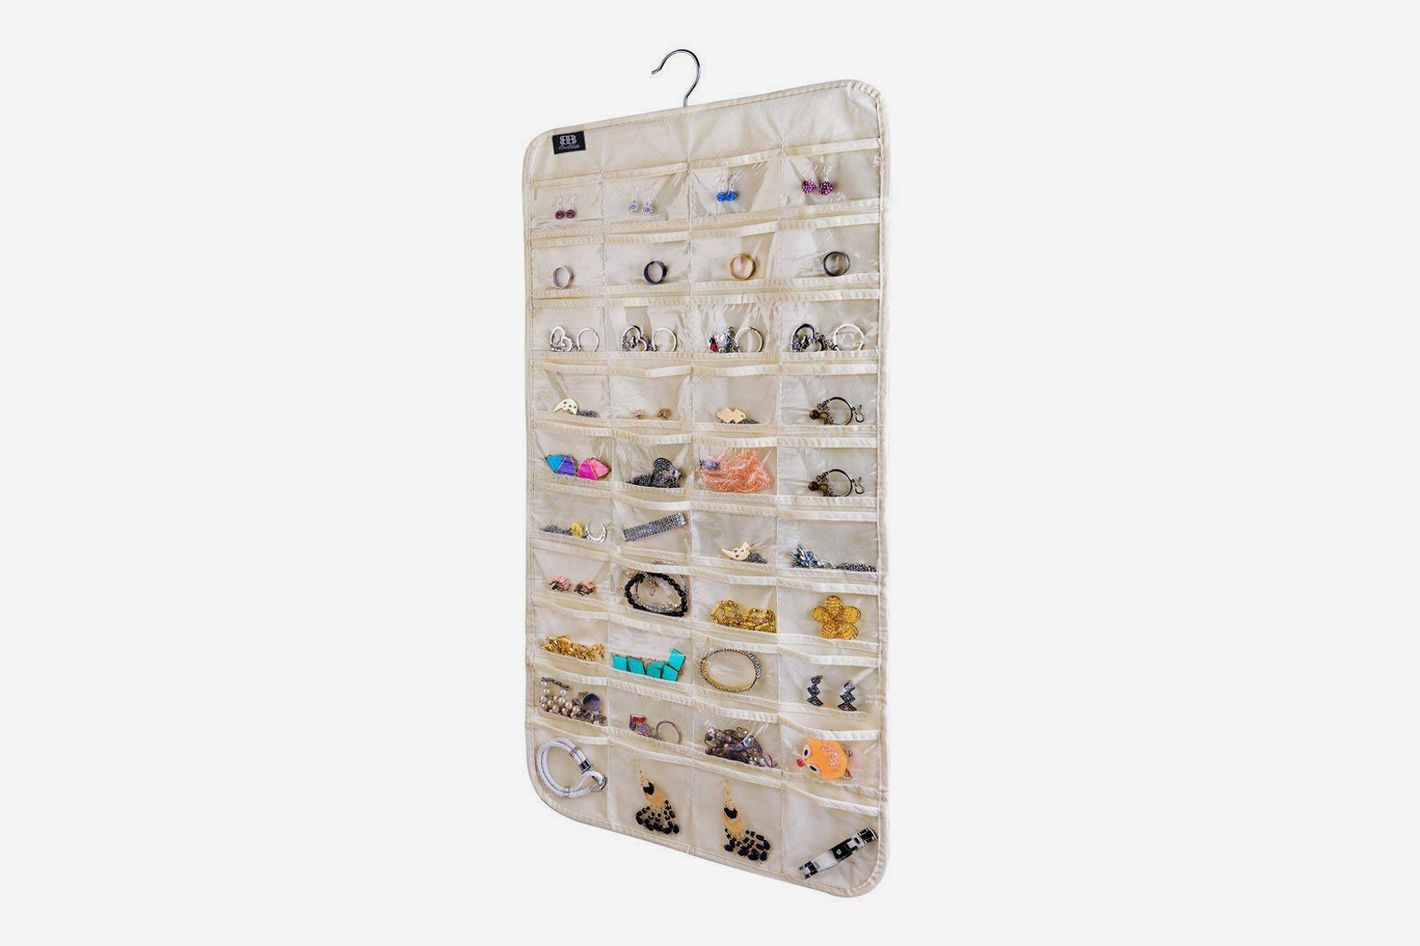 brotrade Hanging 80 Pocket Jewelry Organizer